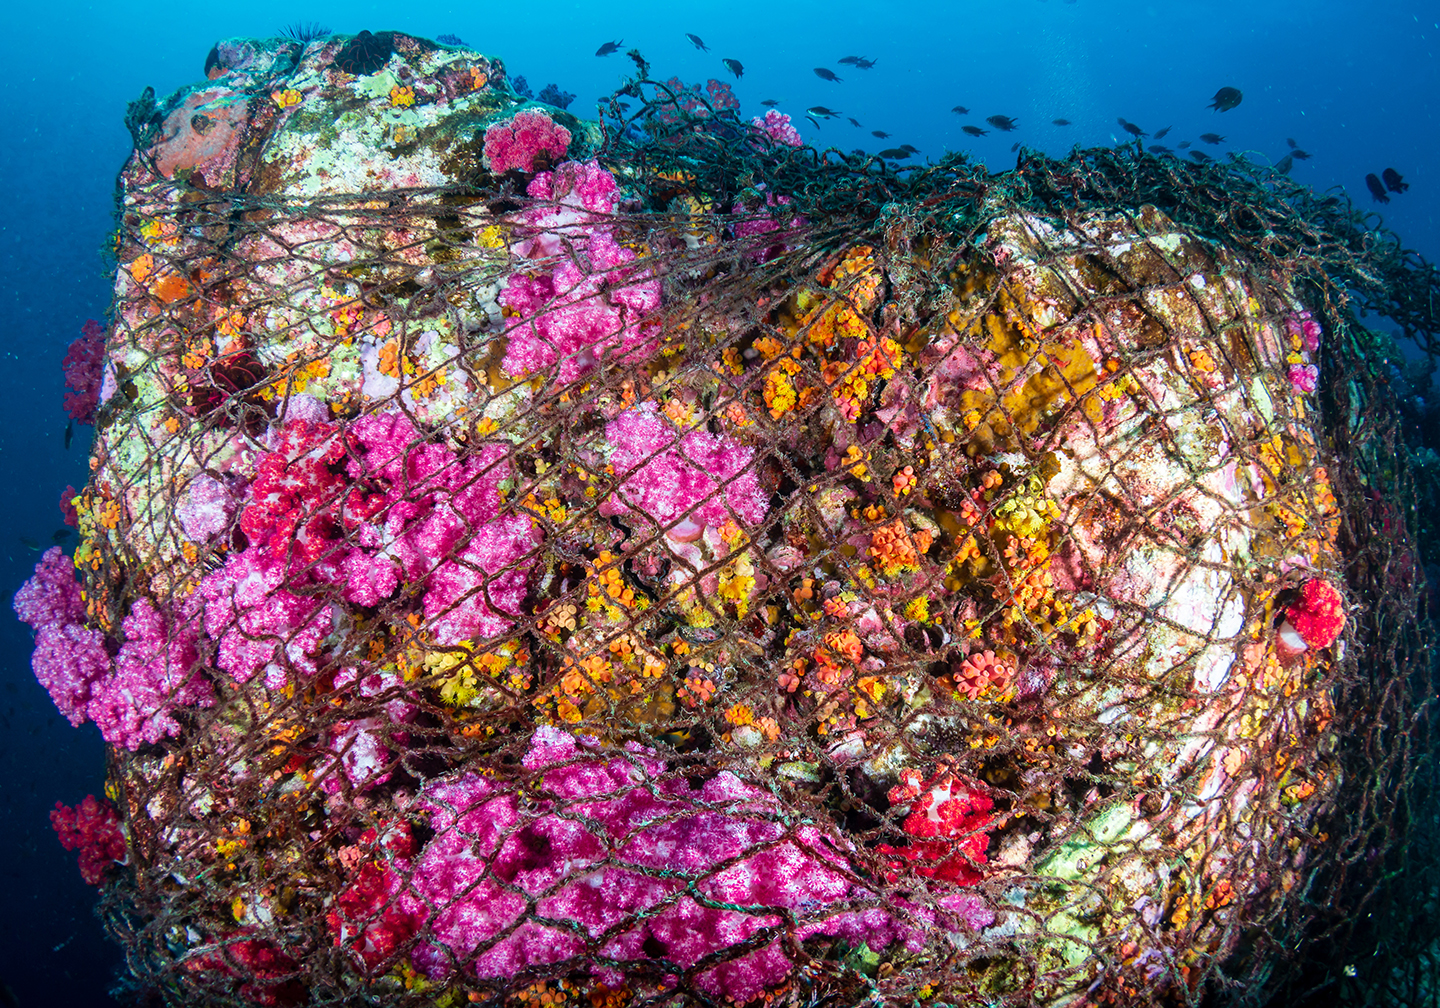 Ghost fishing. A colorful coral reef covered in a commercial fishing net.